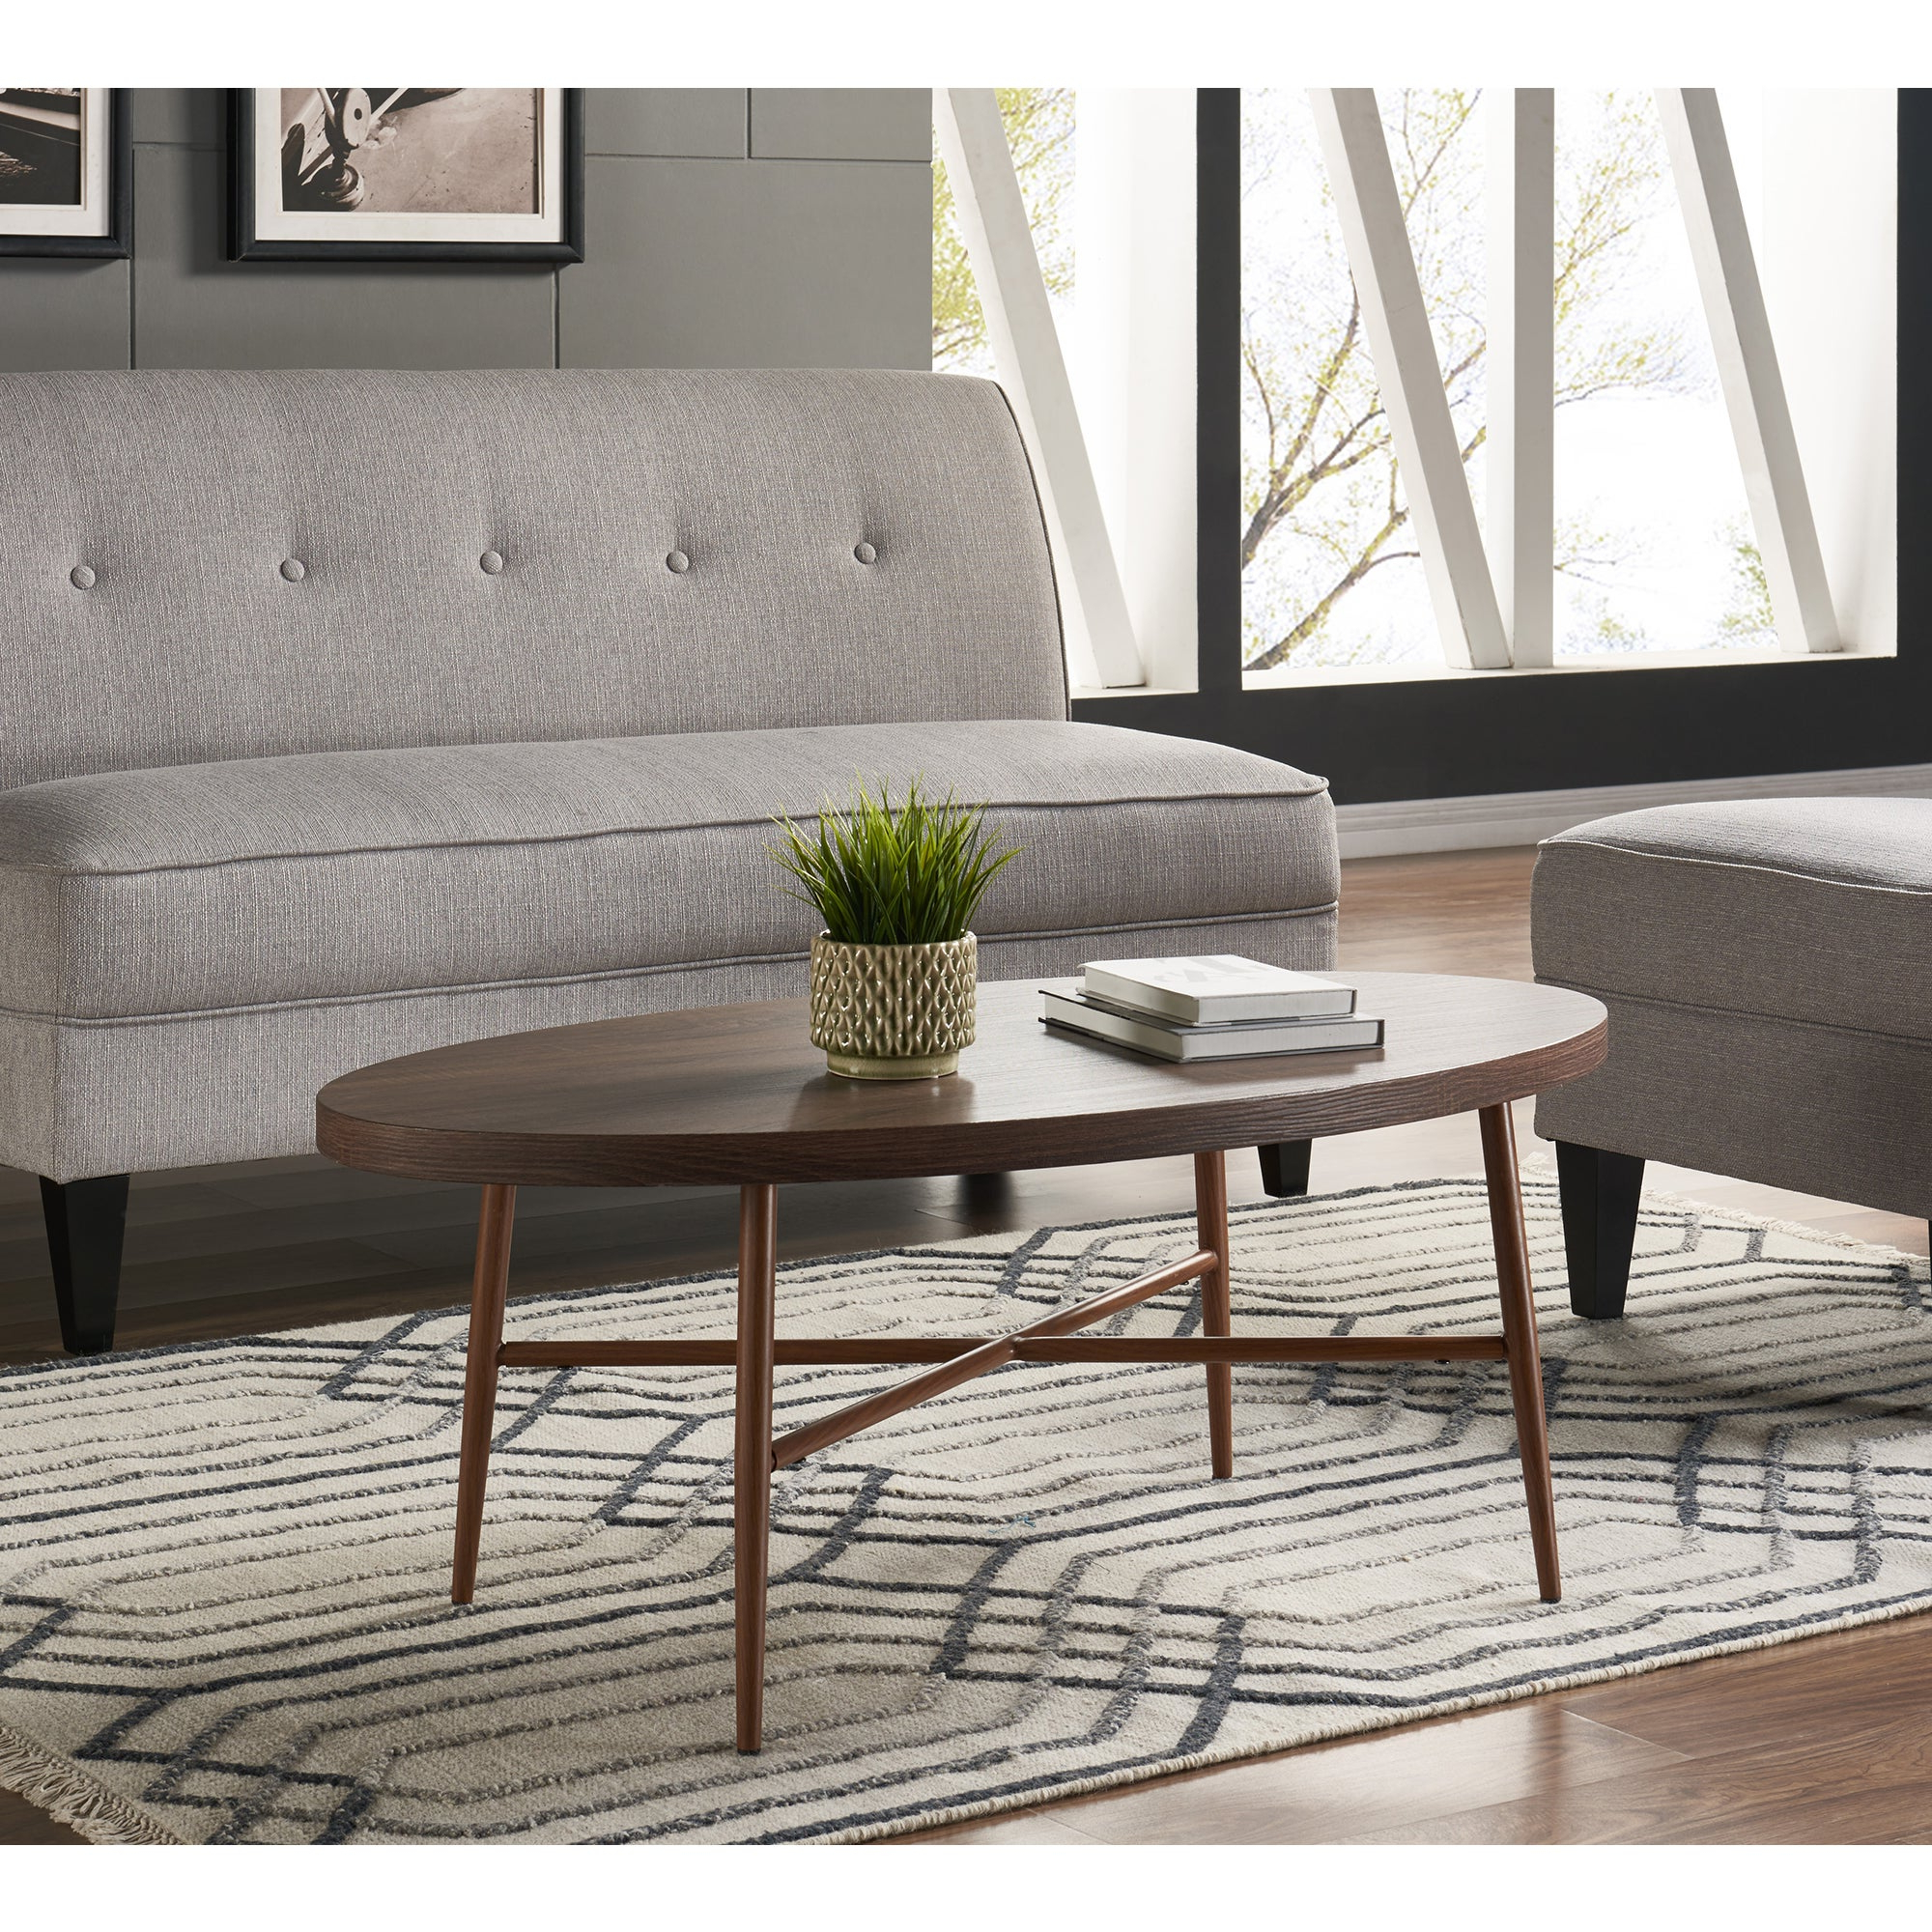 2019 Handy Living Miami White Oval Coffee Tables With Brown Metal Legs Within Handy Living Miami Brown Oval Coffee Table With Brown Metal Legs (View 8 of 20)